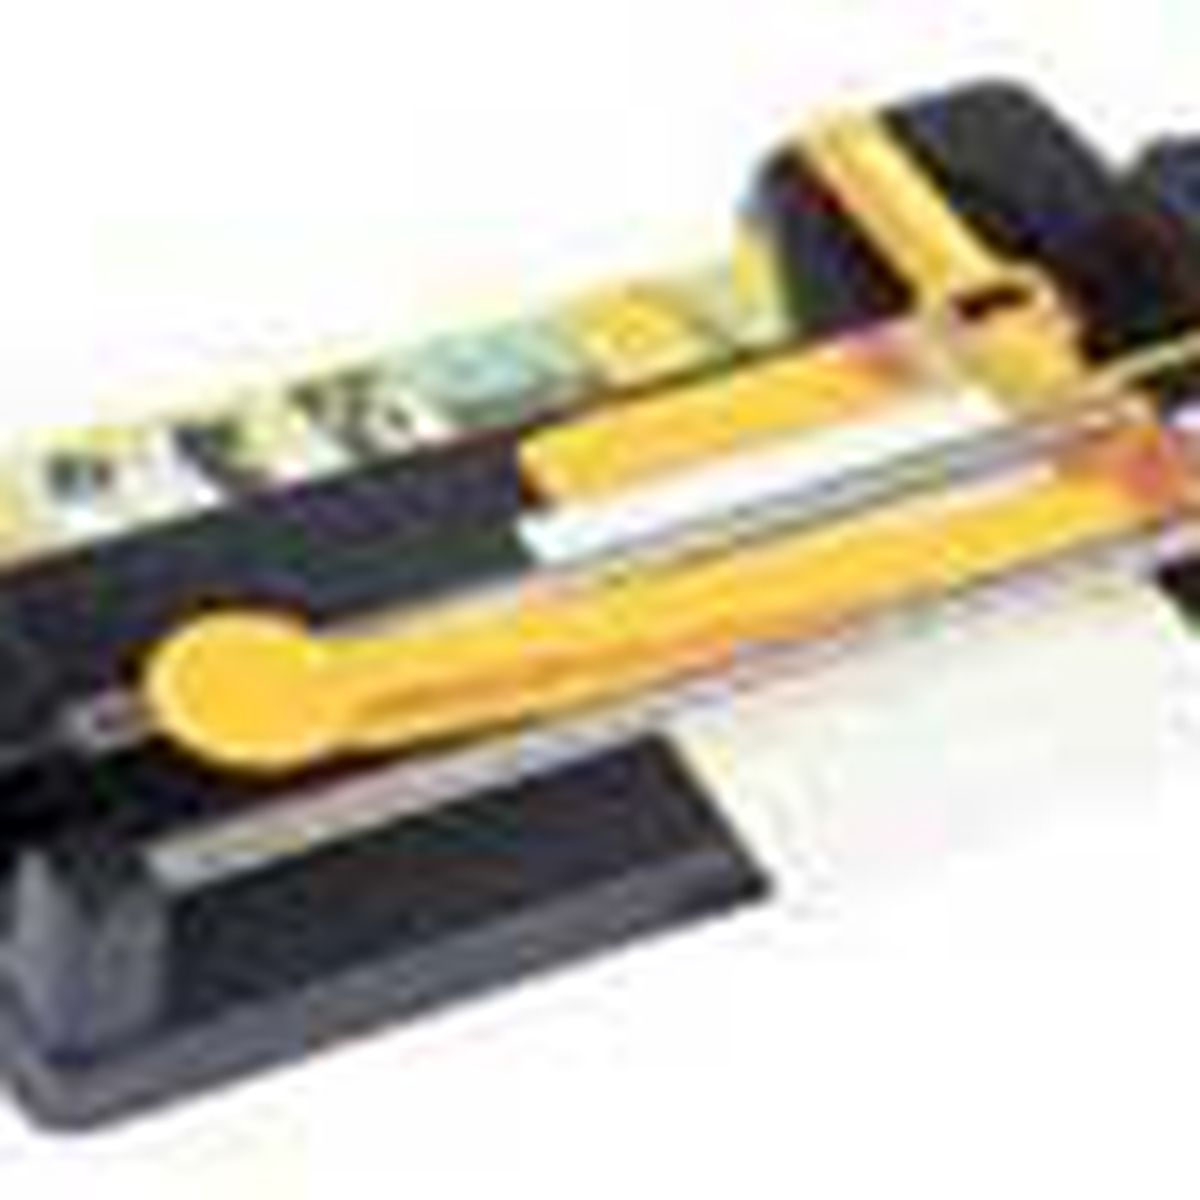 score-and-snap tile cutter